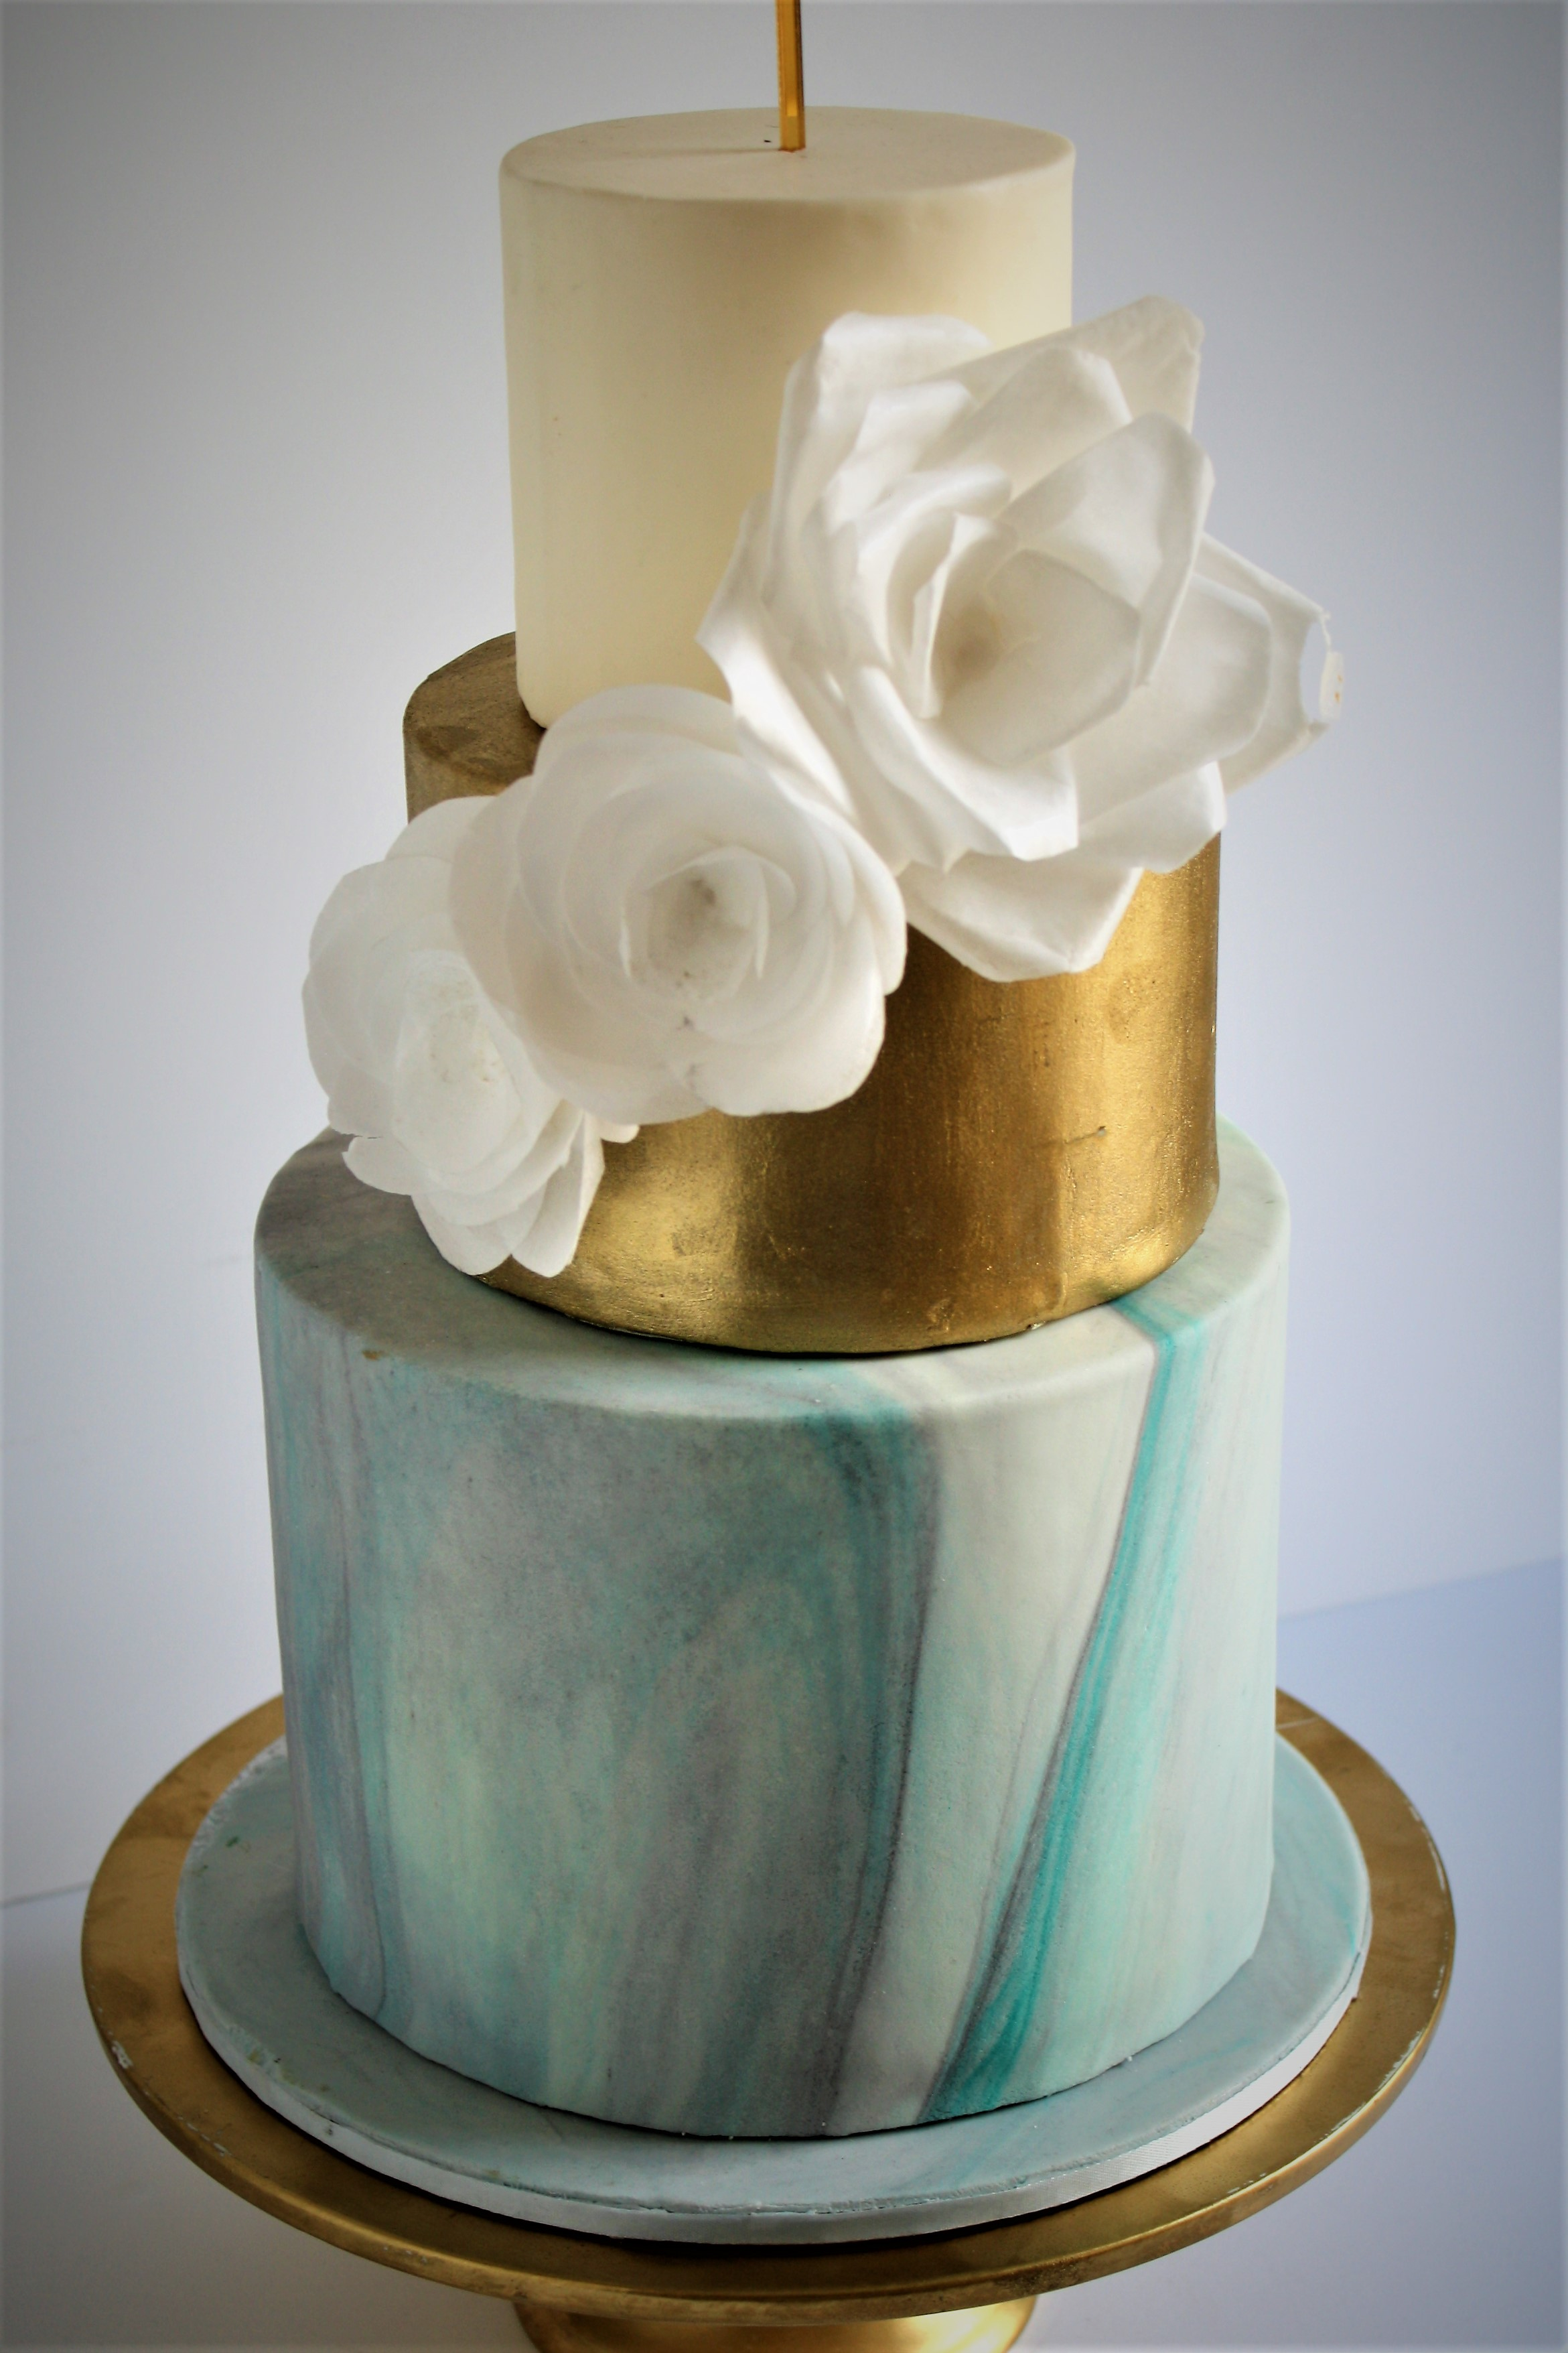 Marble &gold wedding cake